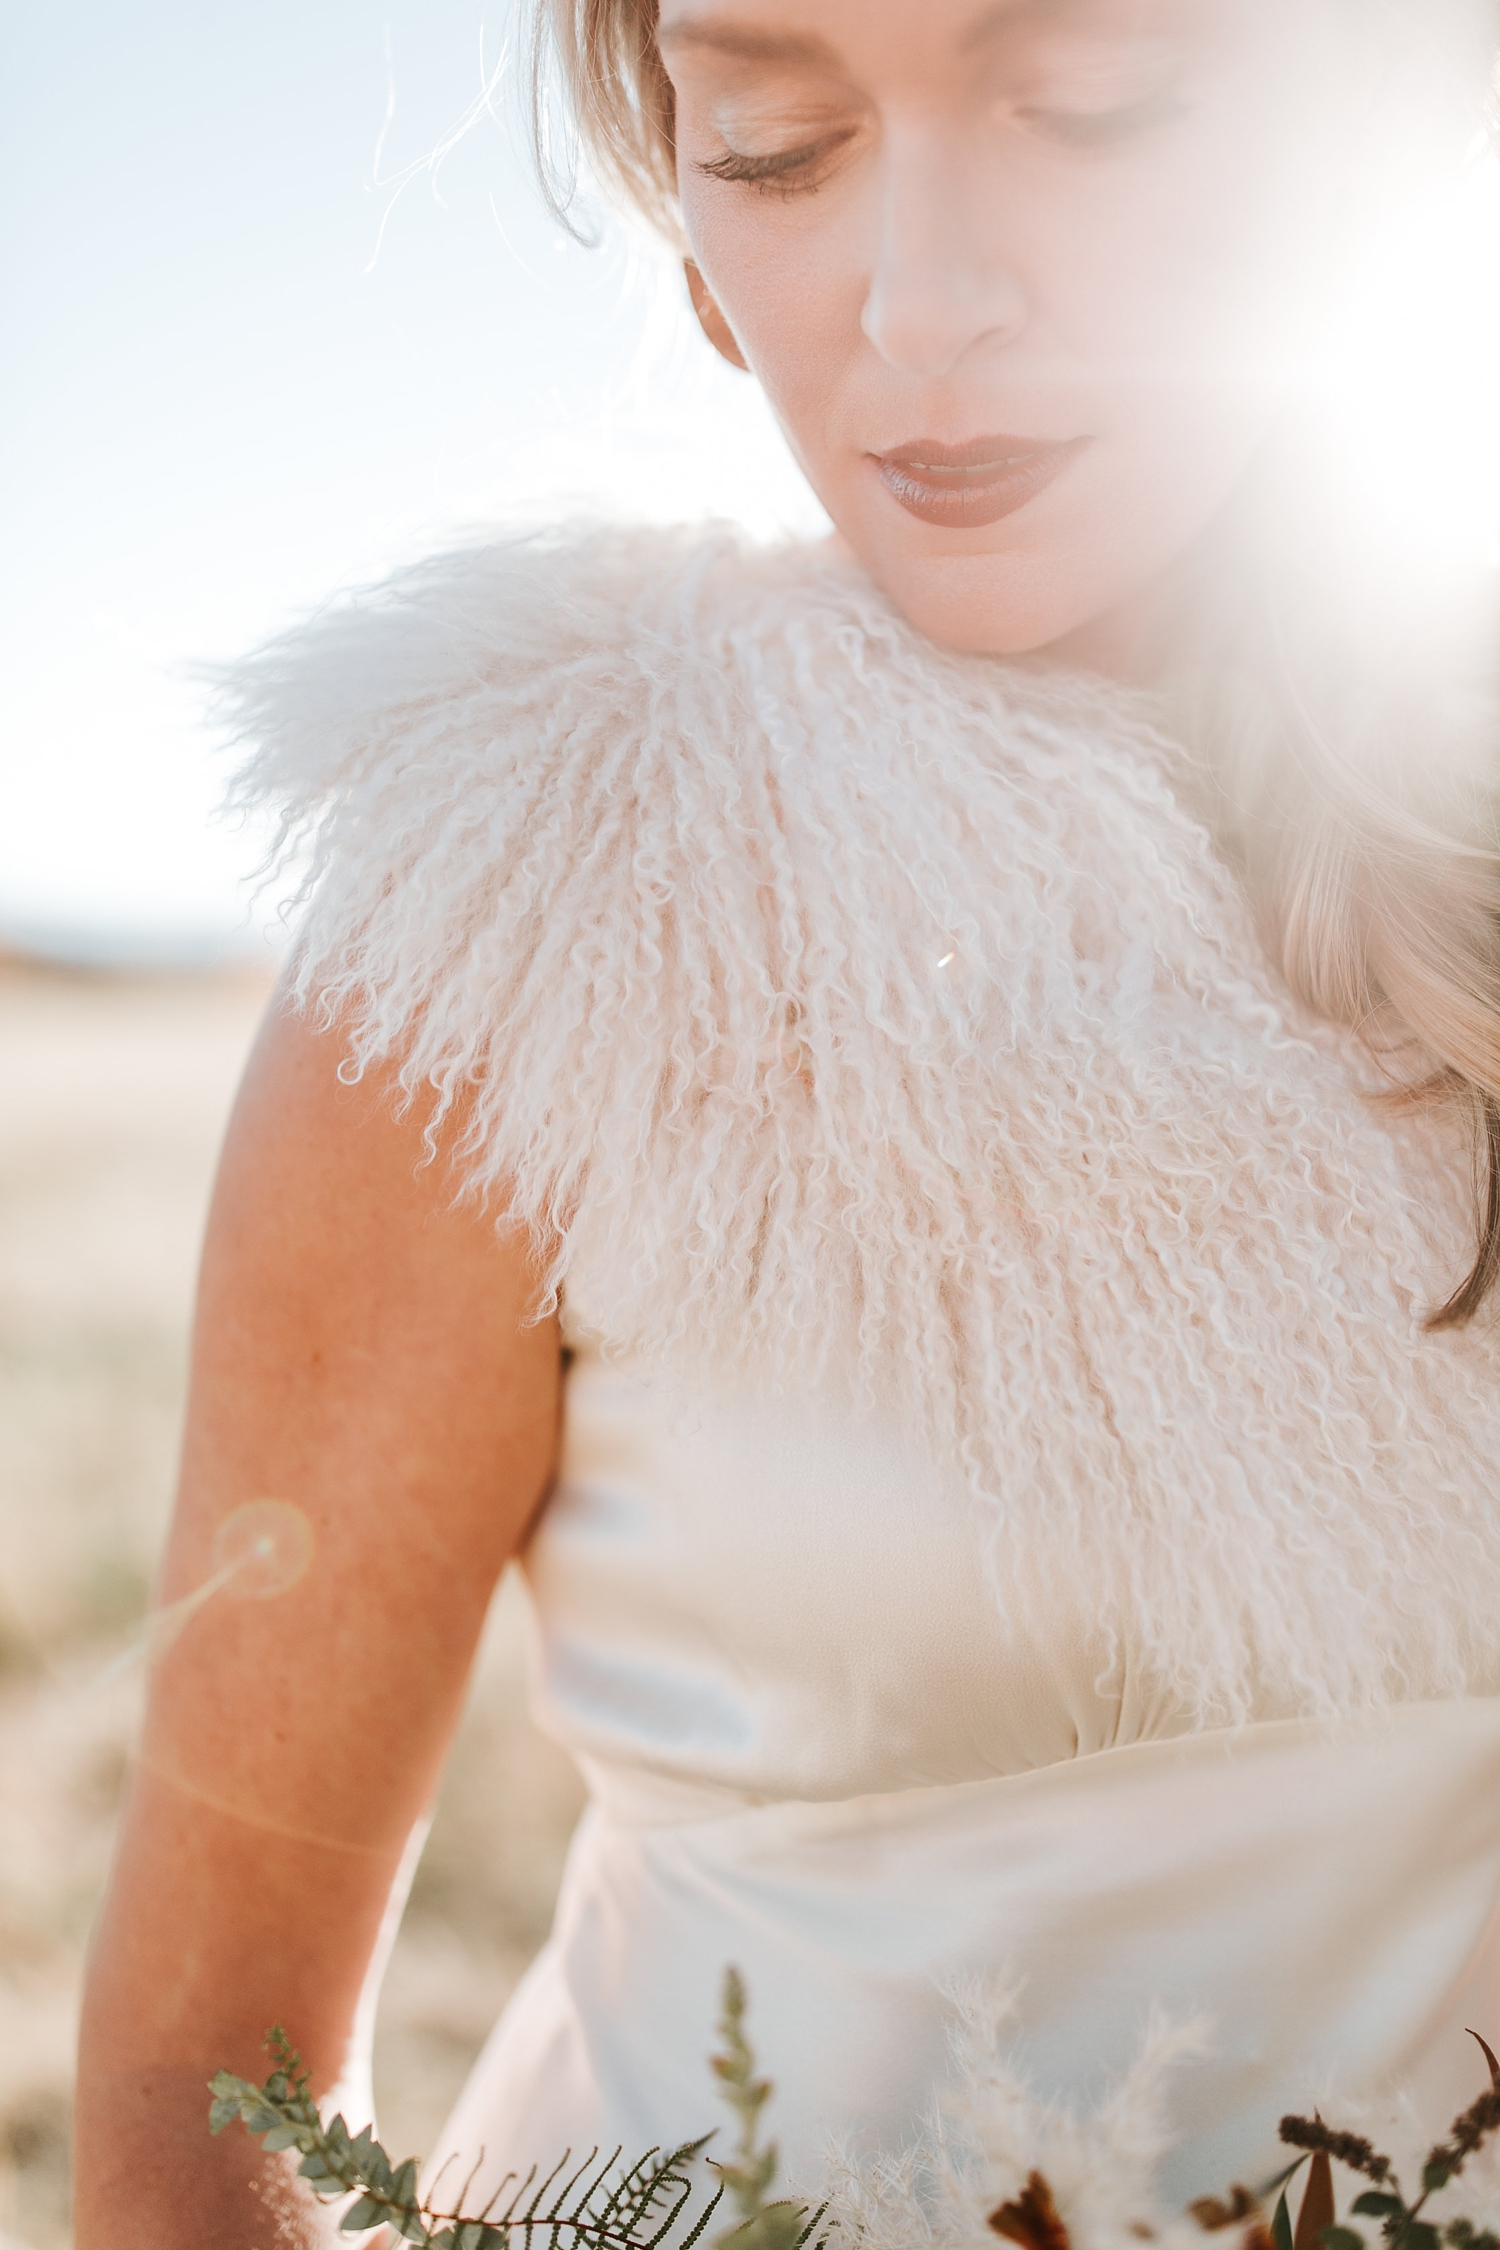 Alicia+lucia+photography+-+albuquerque+wedding+photographer+-+santa+fe+wedding+photography+-+new+mexico+wedding+photographer+-+new+mexico+ghost+ranch+wedding+-+styled+wedding+shoot_0031.jpg